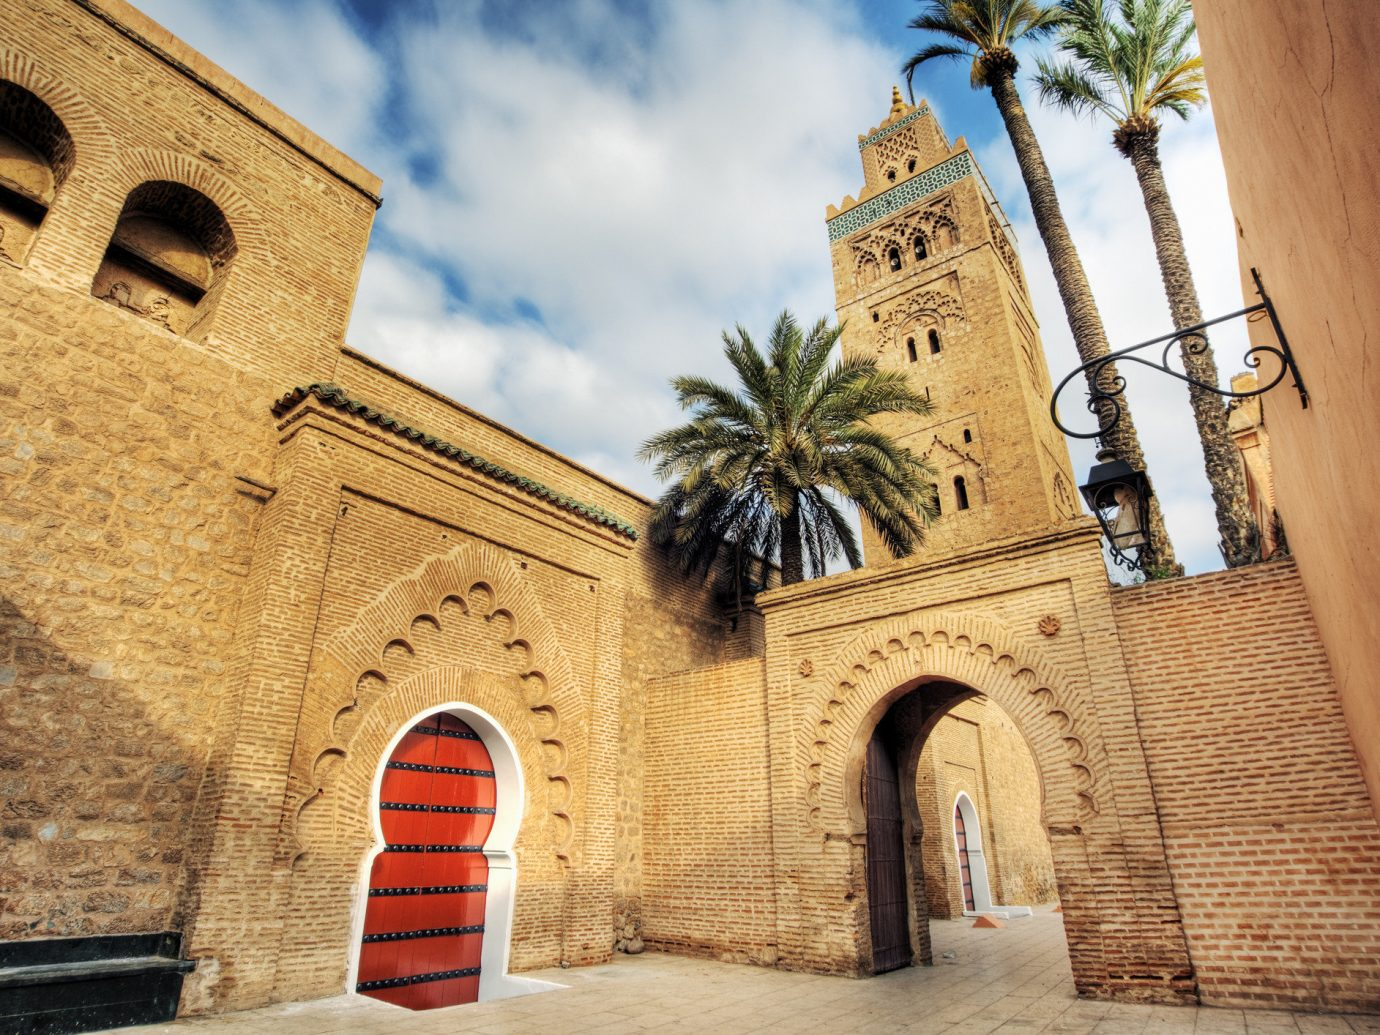 Trip Ideas building outdoor brick stone Architecture Church ancient history place of worship facade middle ages chapel arch synagogue monastery history